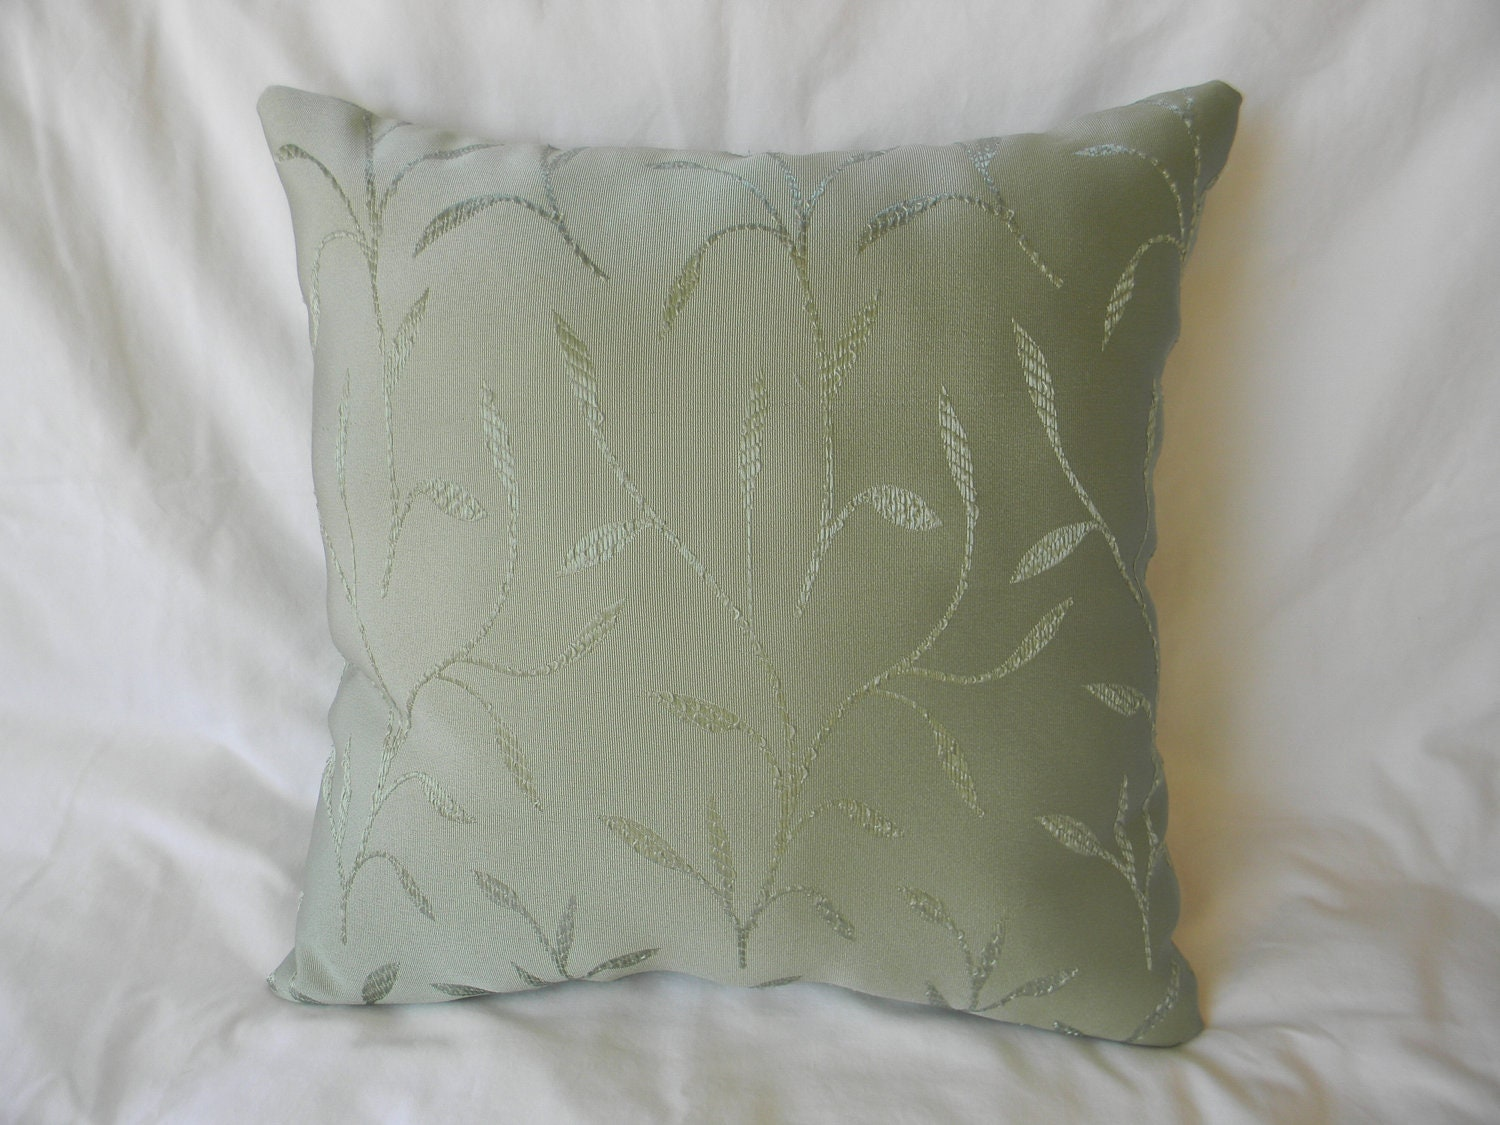 Throw Pillows For Sage Green Couch : Accent Pillow Square Sage Green with Ornamental Grass Design